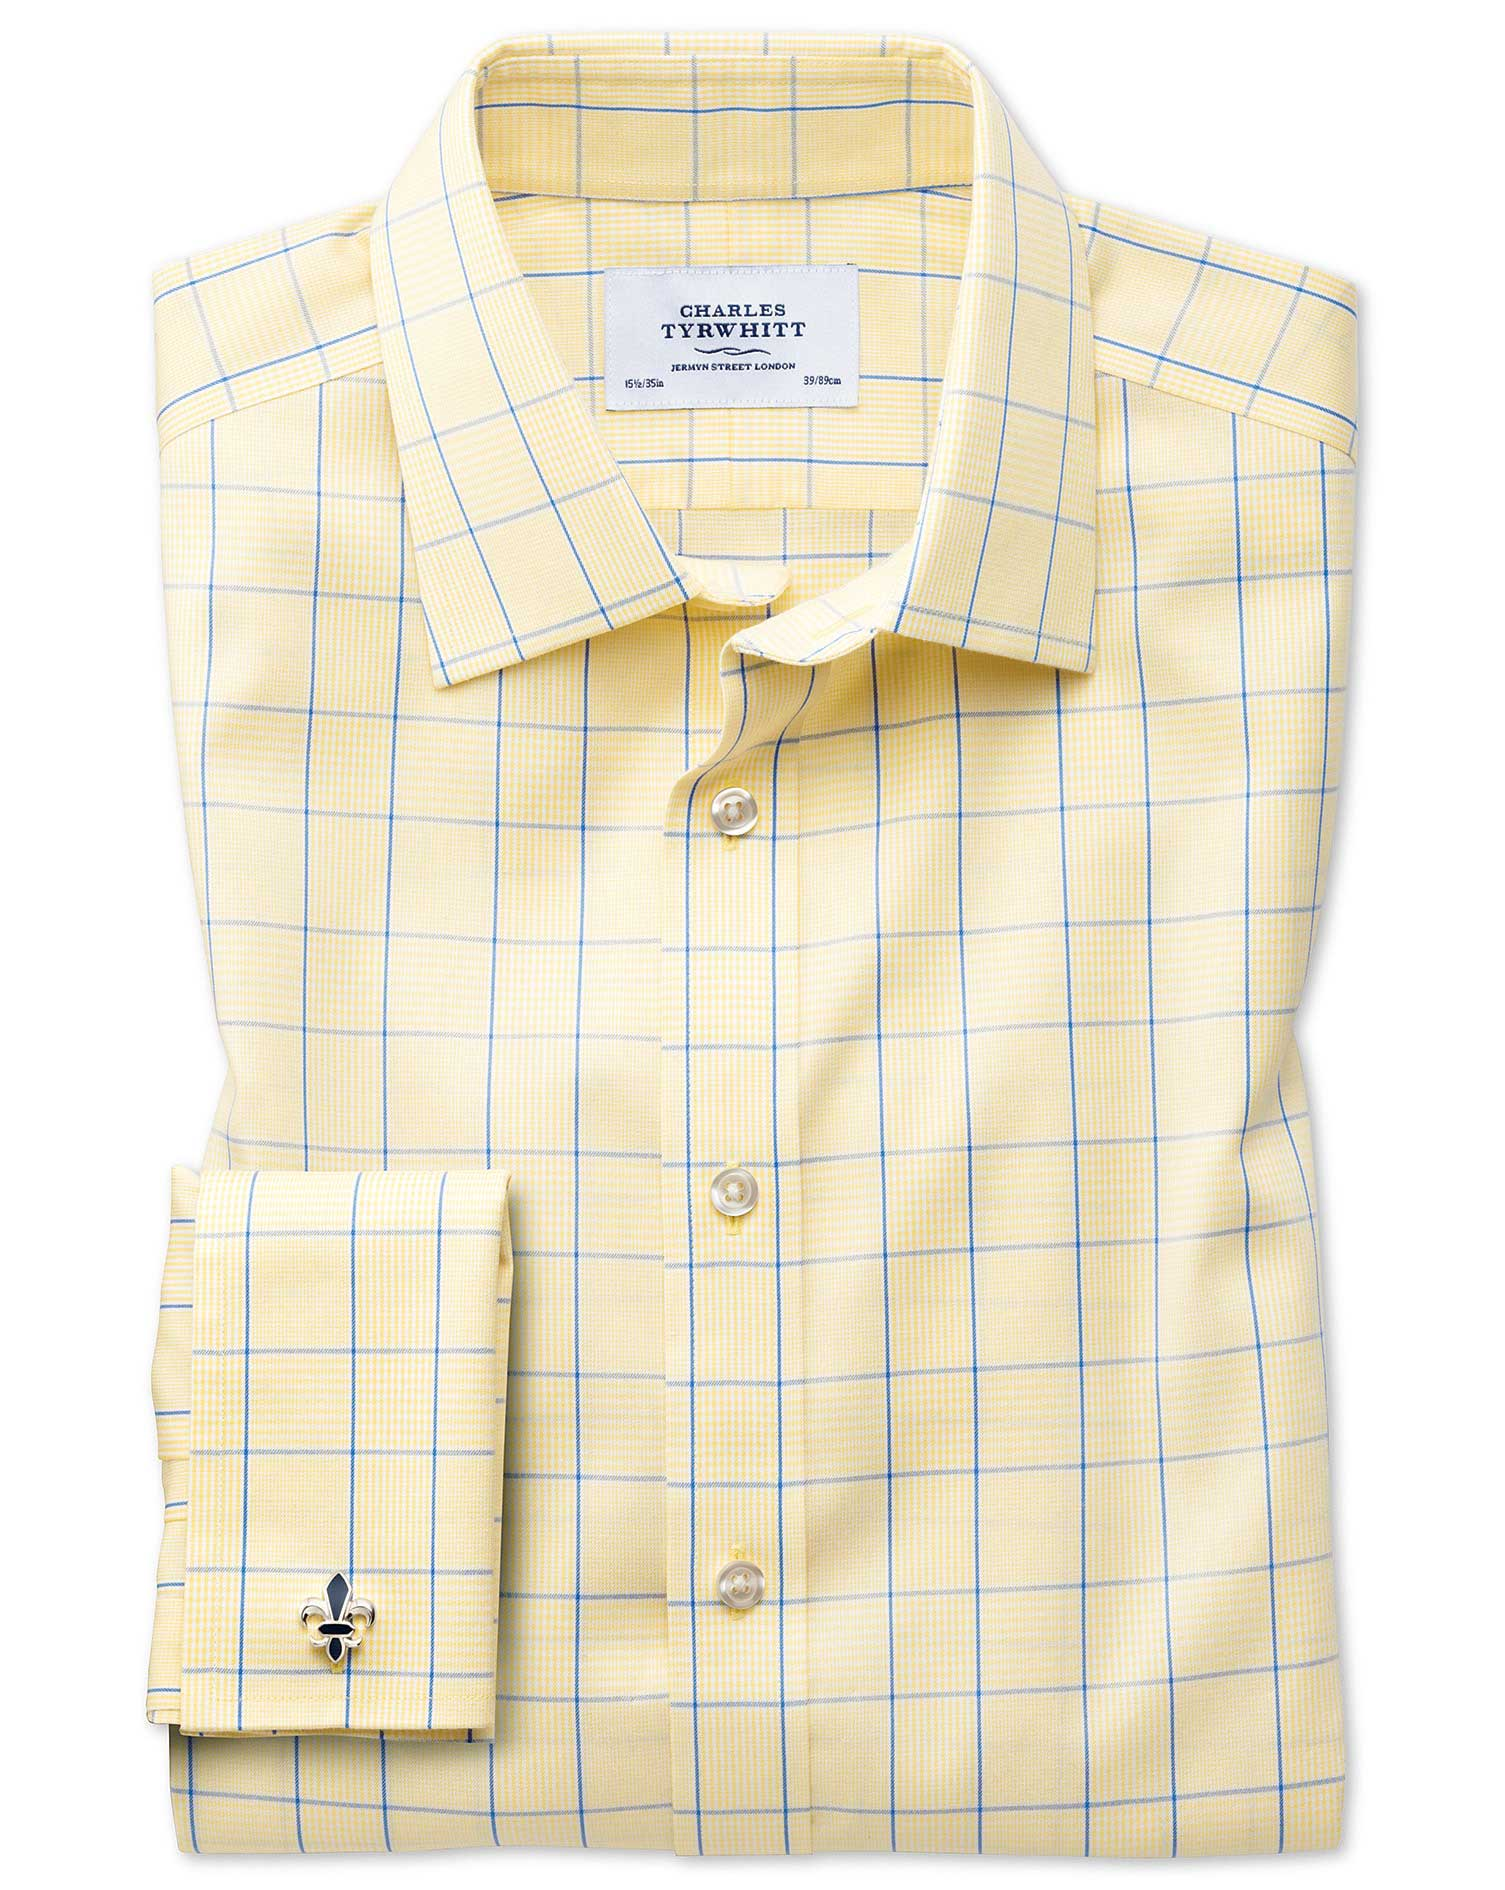 Extra Slim Fit Non-Iron Prince Of Wales Yellow and Royal Blue Cotton Formal Shirt Double Cuff Size 1